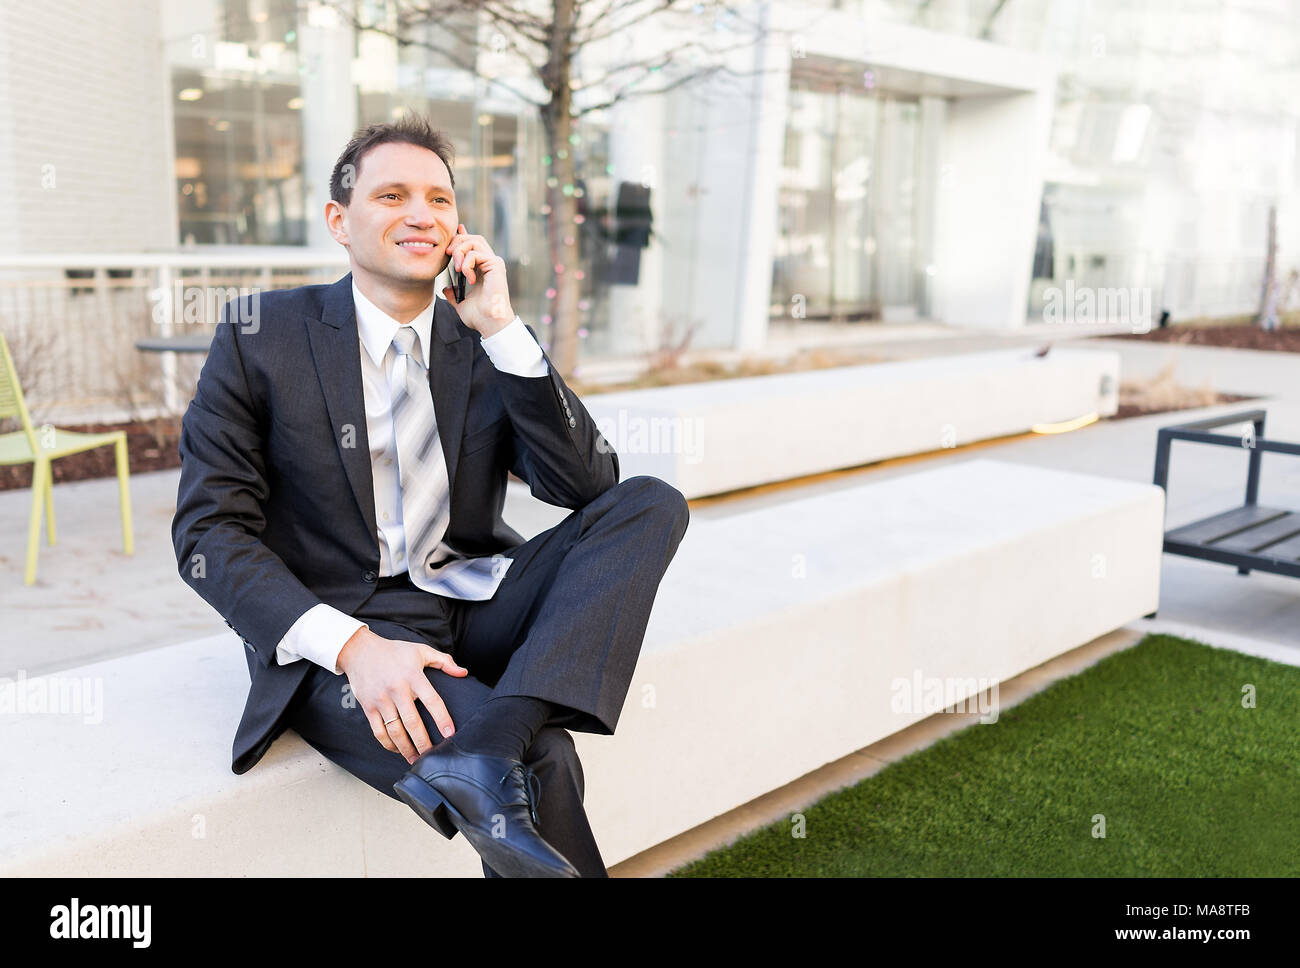 Handsome, attractive young businessman sitting on bench, using talking holding smartphone phone mobile cellphone smiling in suit and tie, cheerful on  - Stock Image